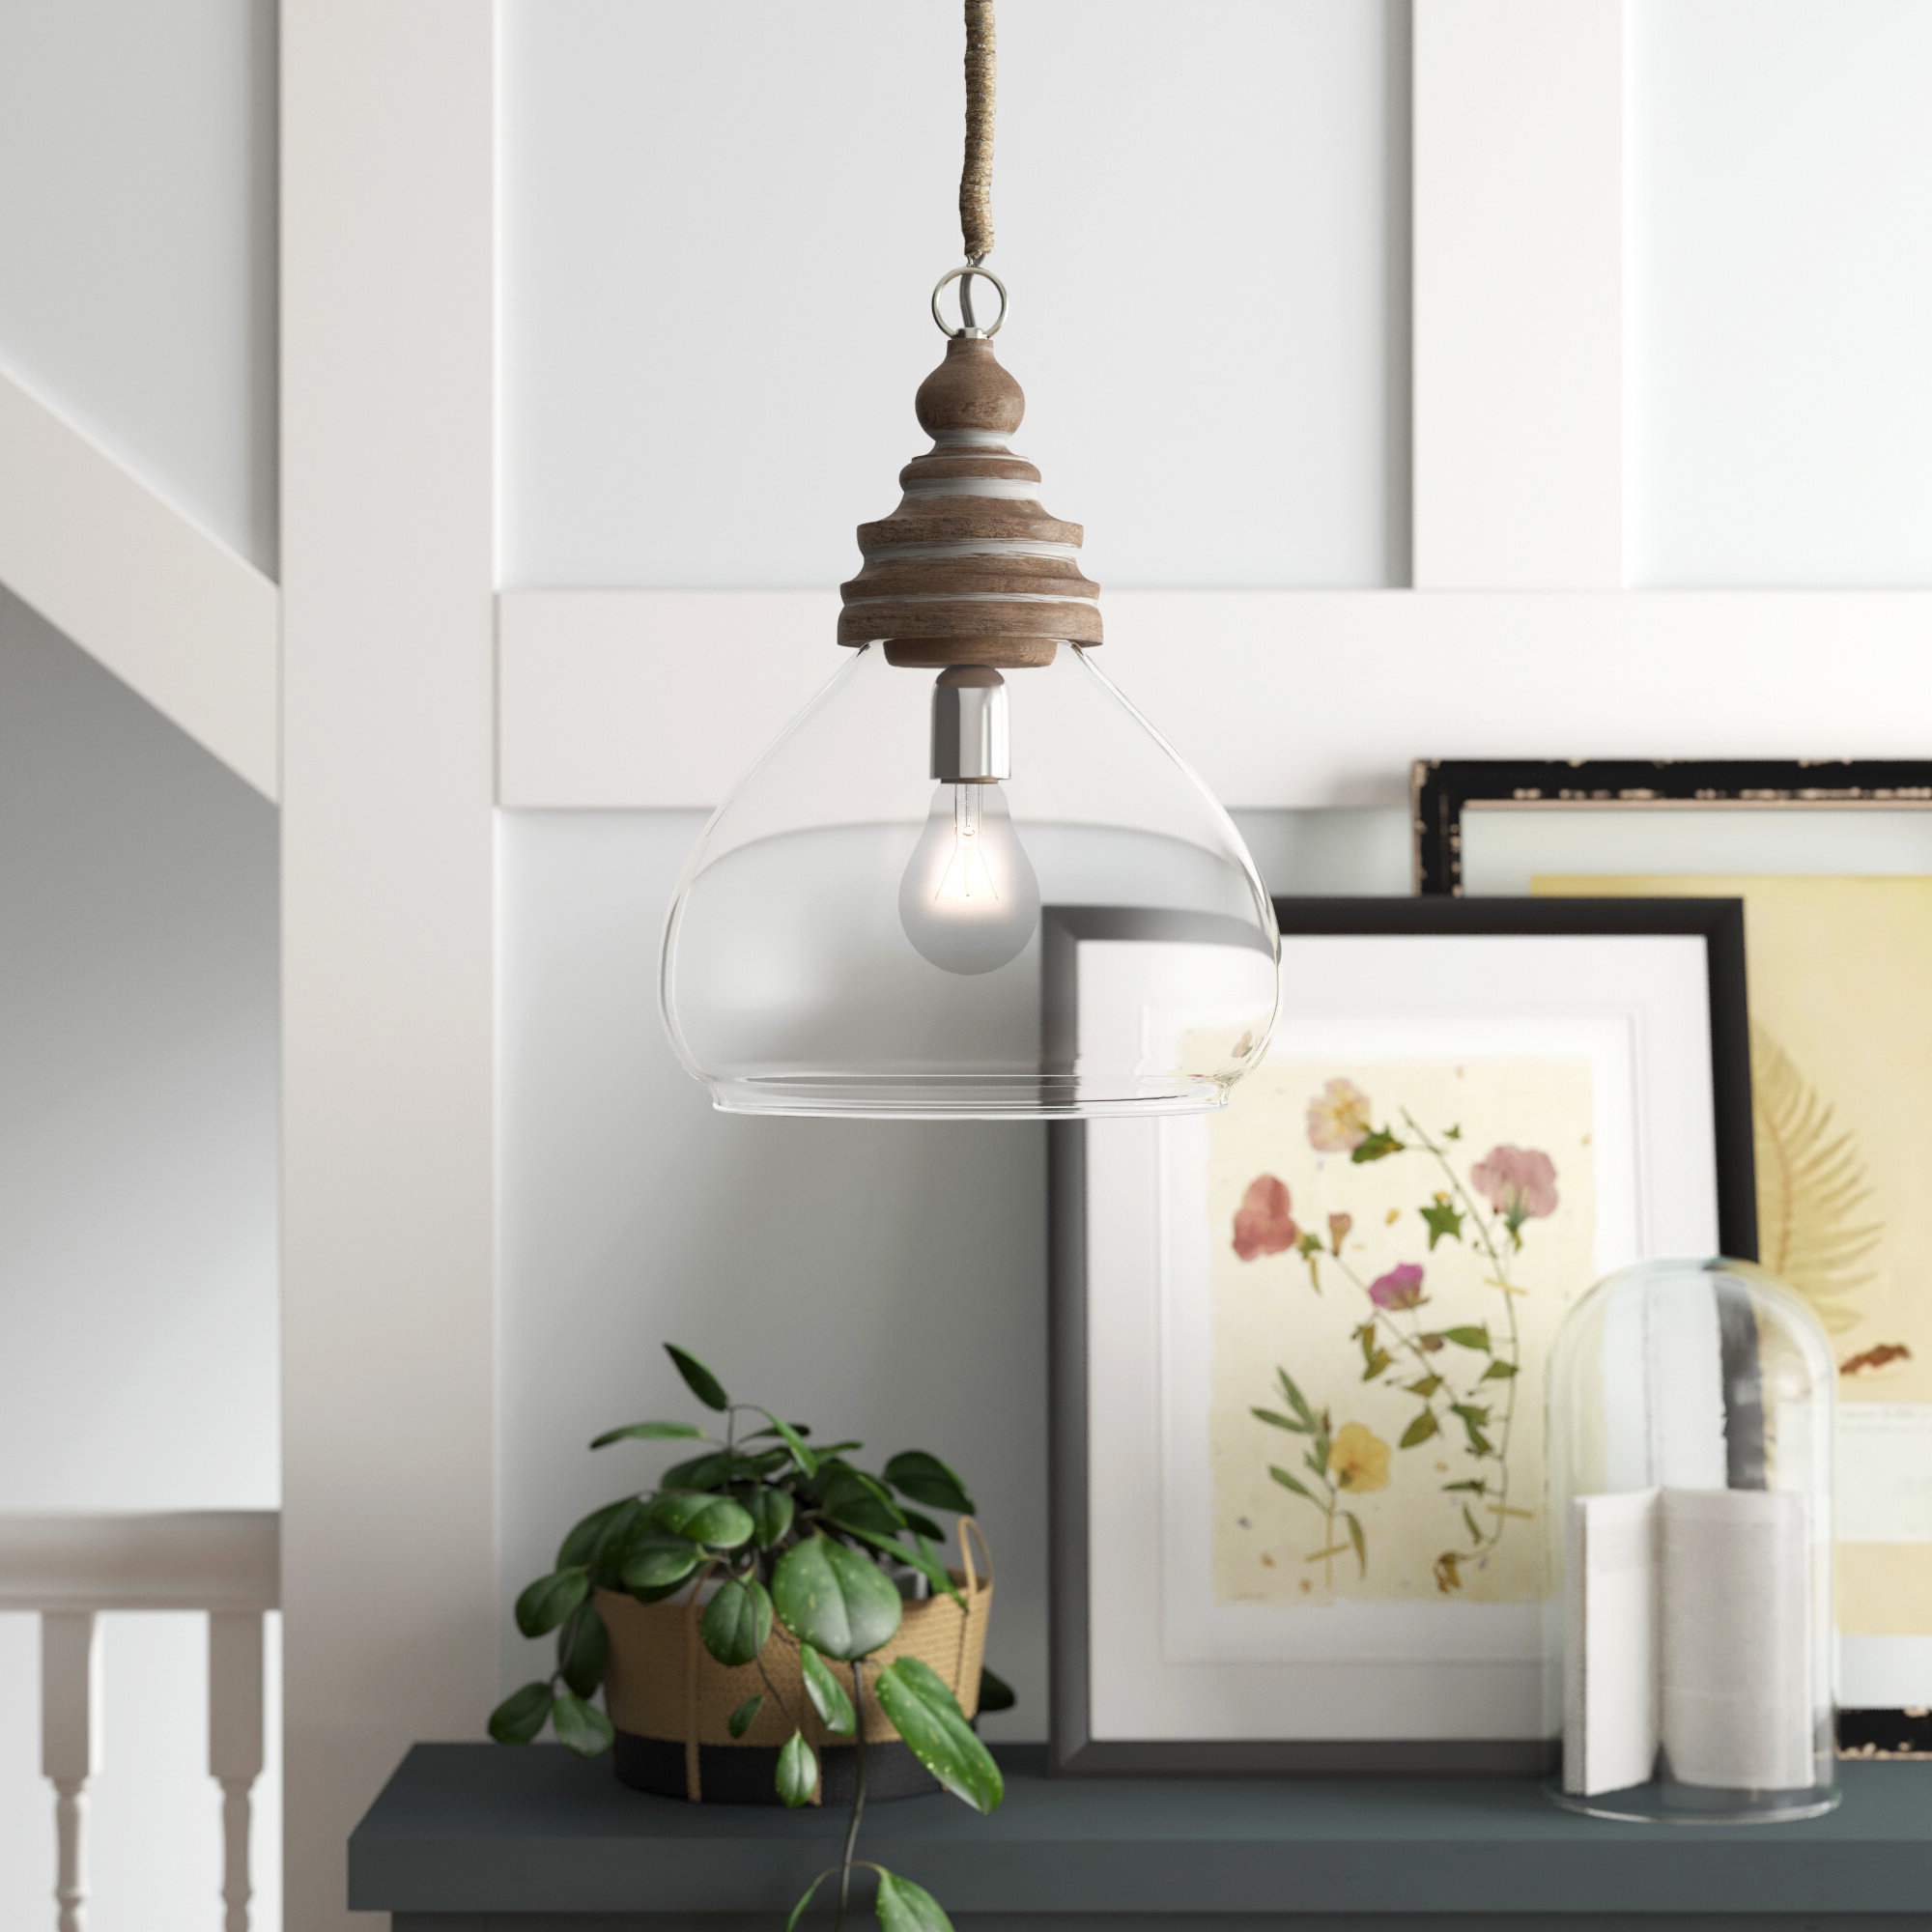 Most Recently Released Brisa 1 Light Single Dome Pendant With Regard To Mueller 1 Light Single Dome Pendants (View 10 of 20)